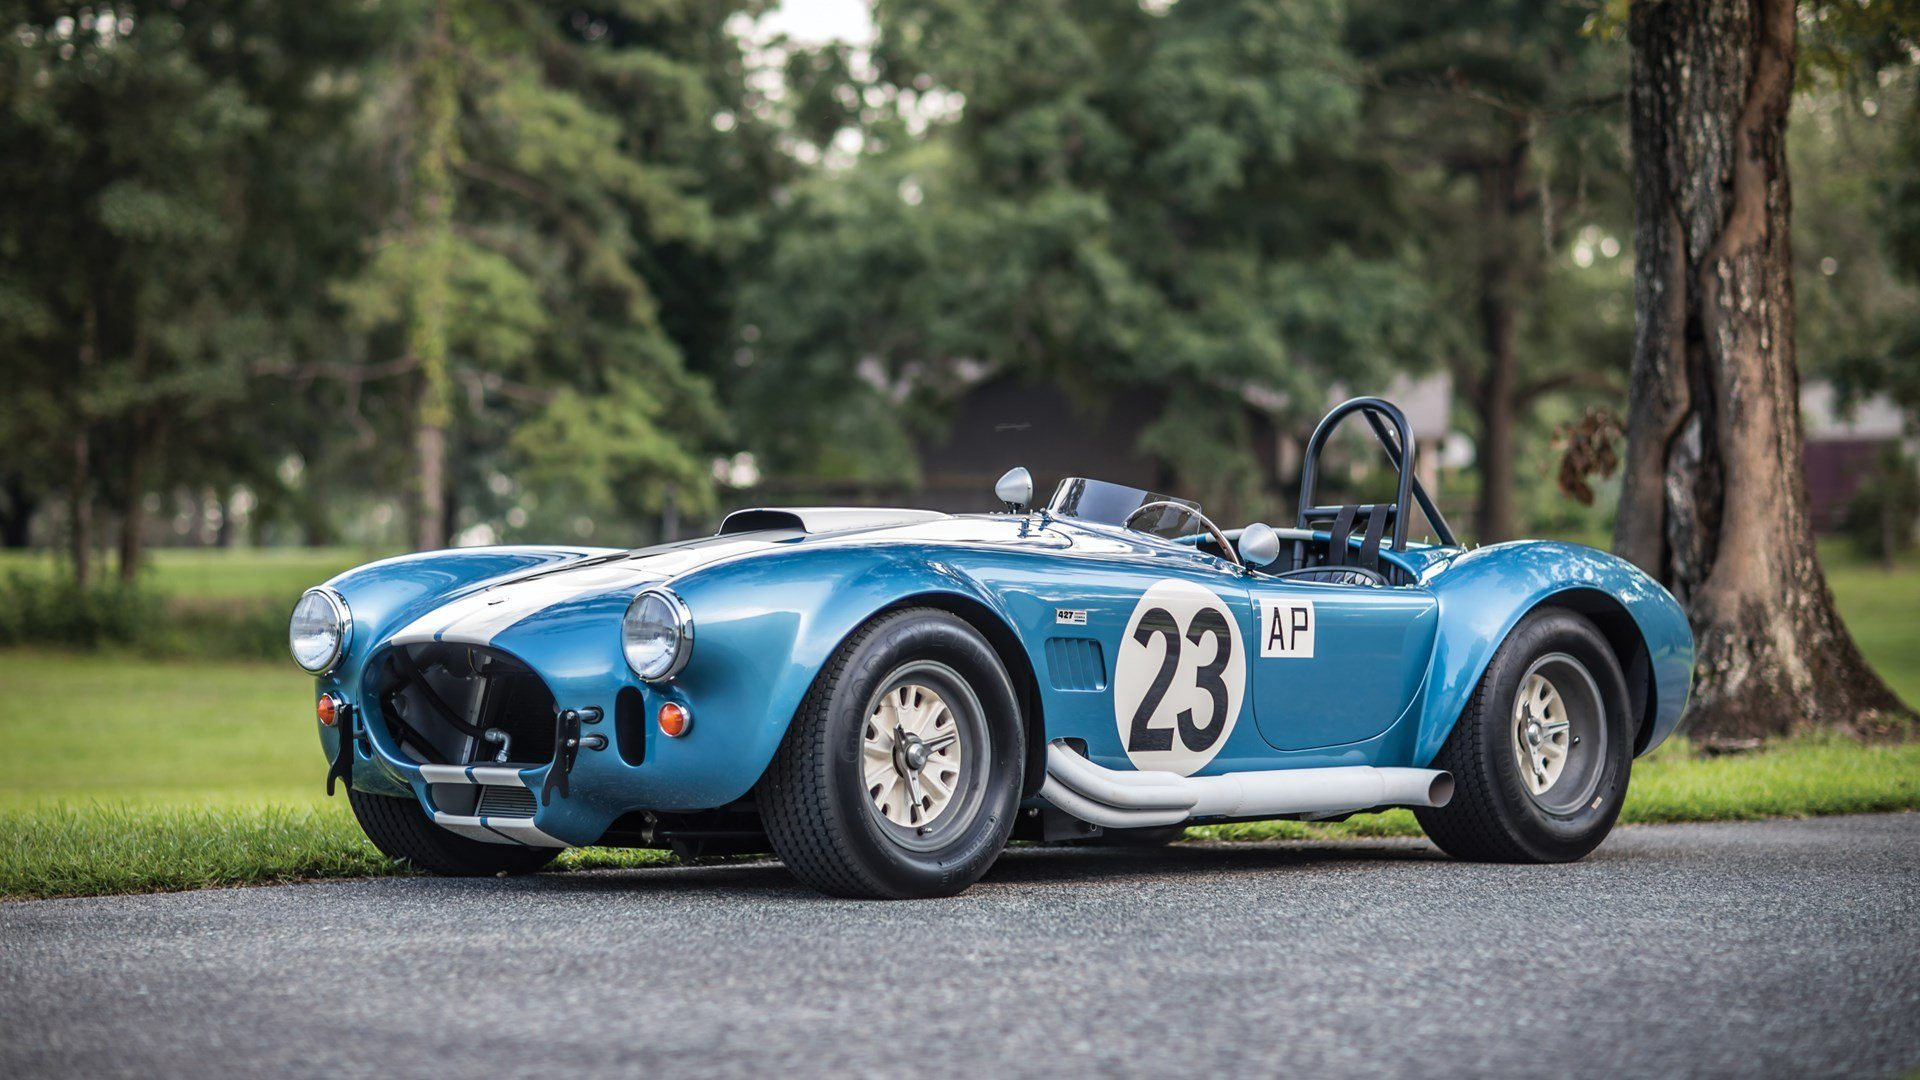 How much would you bid on these 4 incredible vintage cars